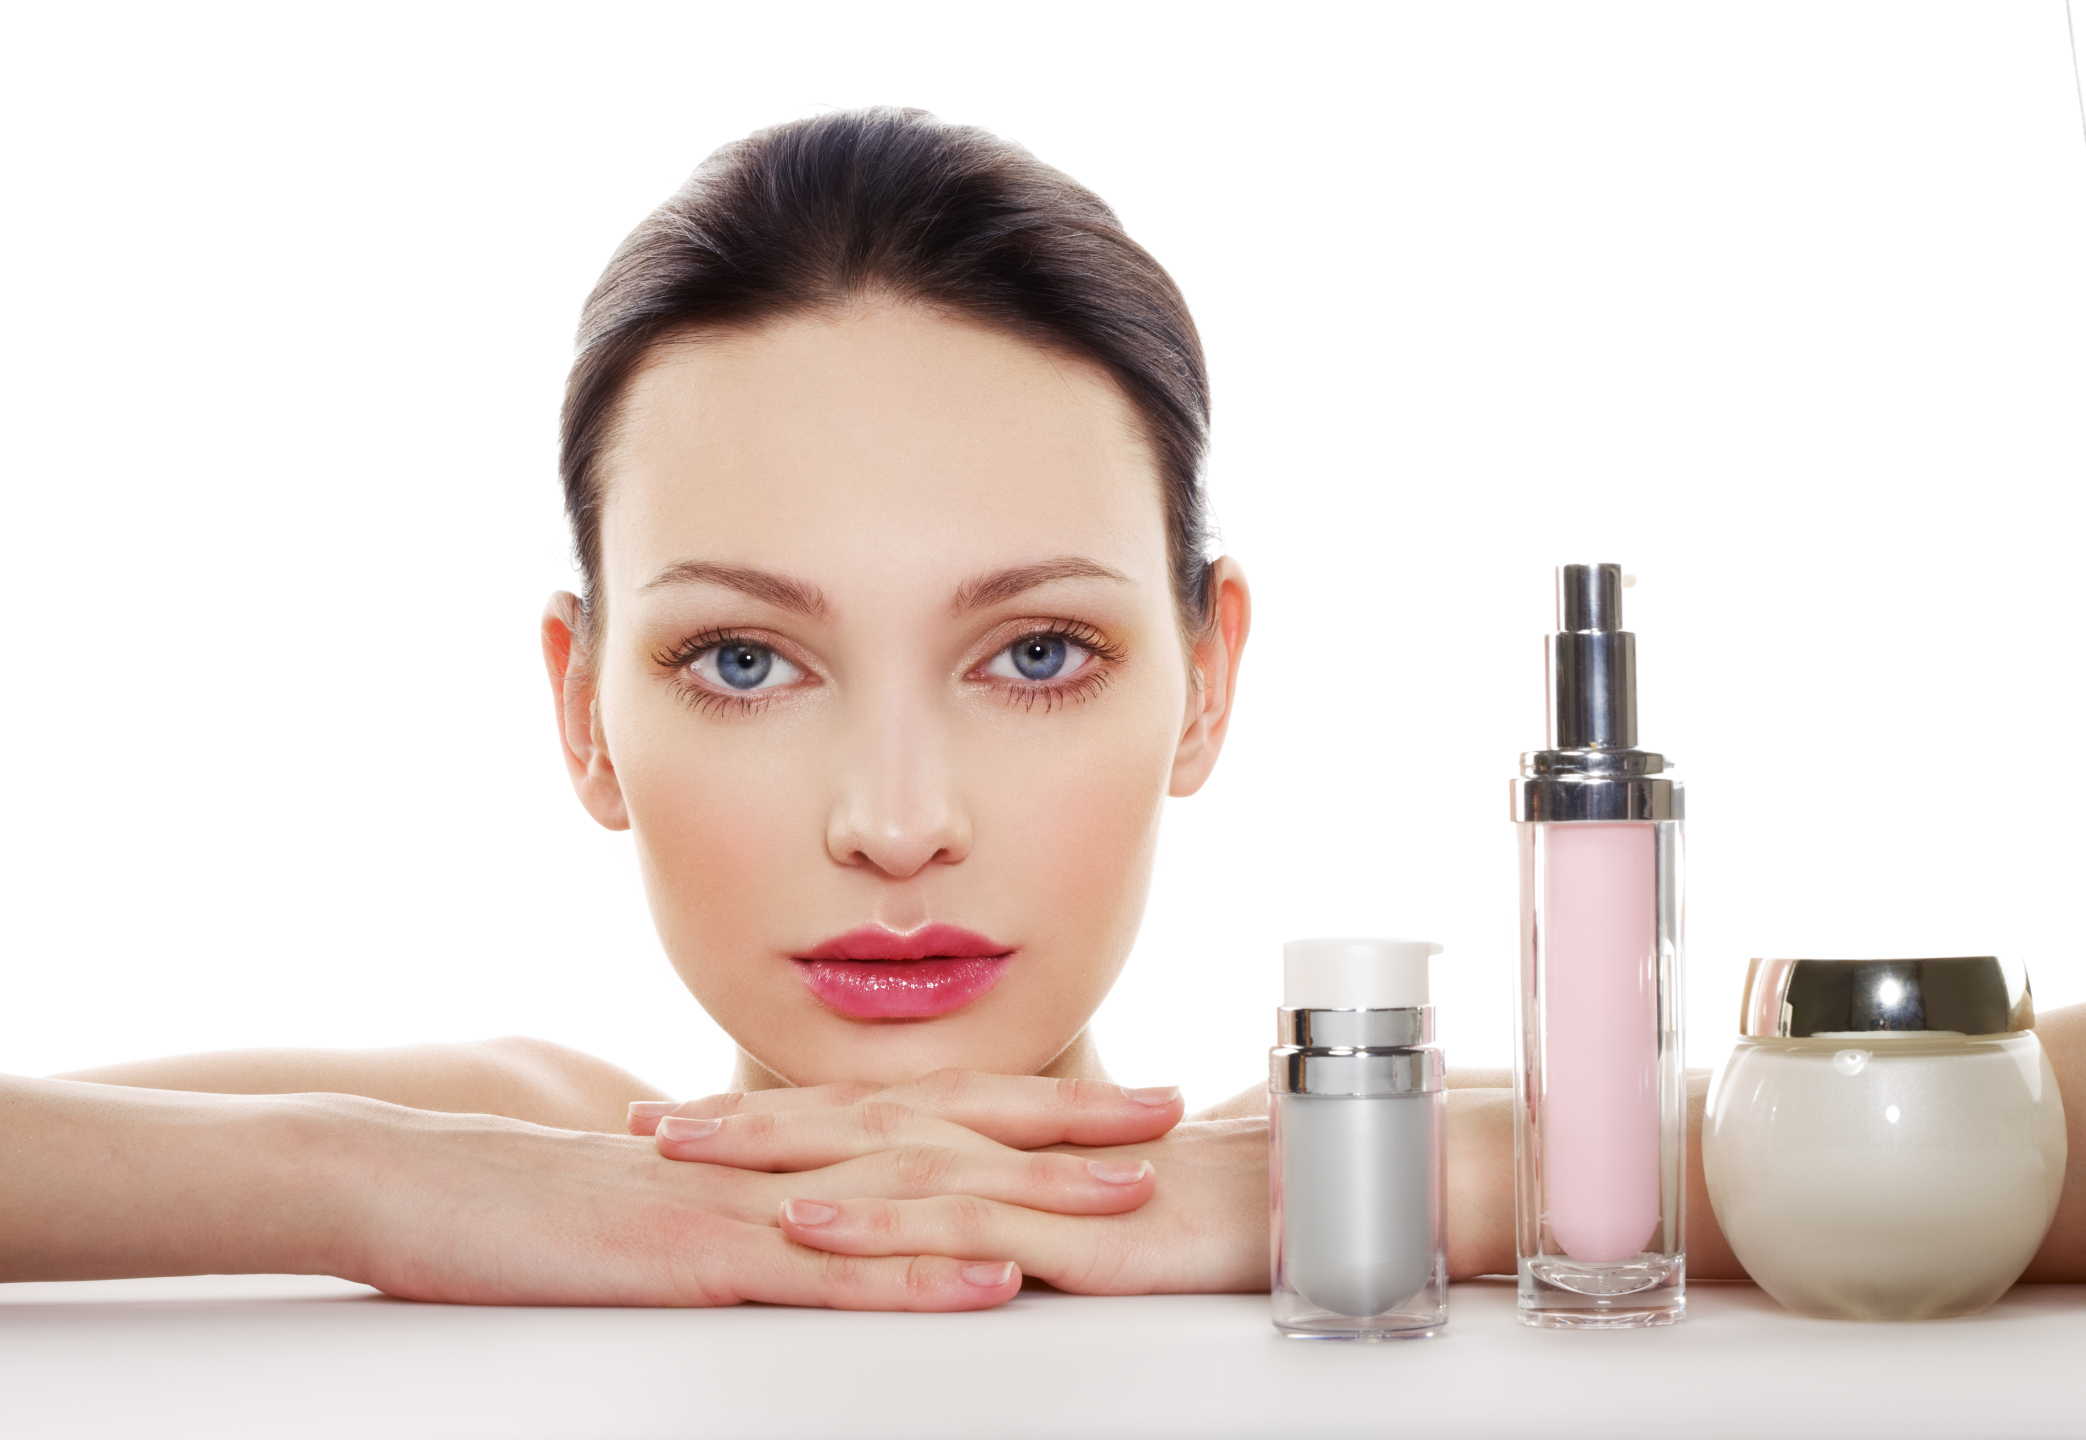 Wholeheartedly Written: Skin Care First, Makeup Second